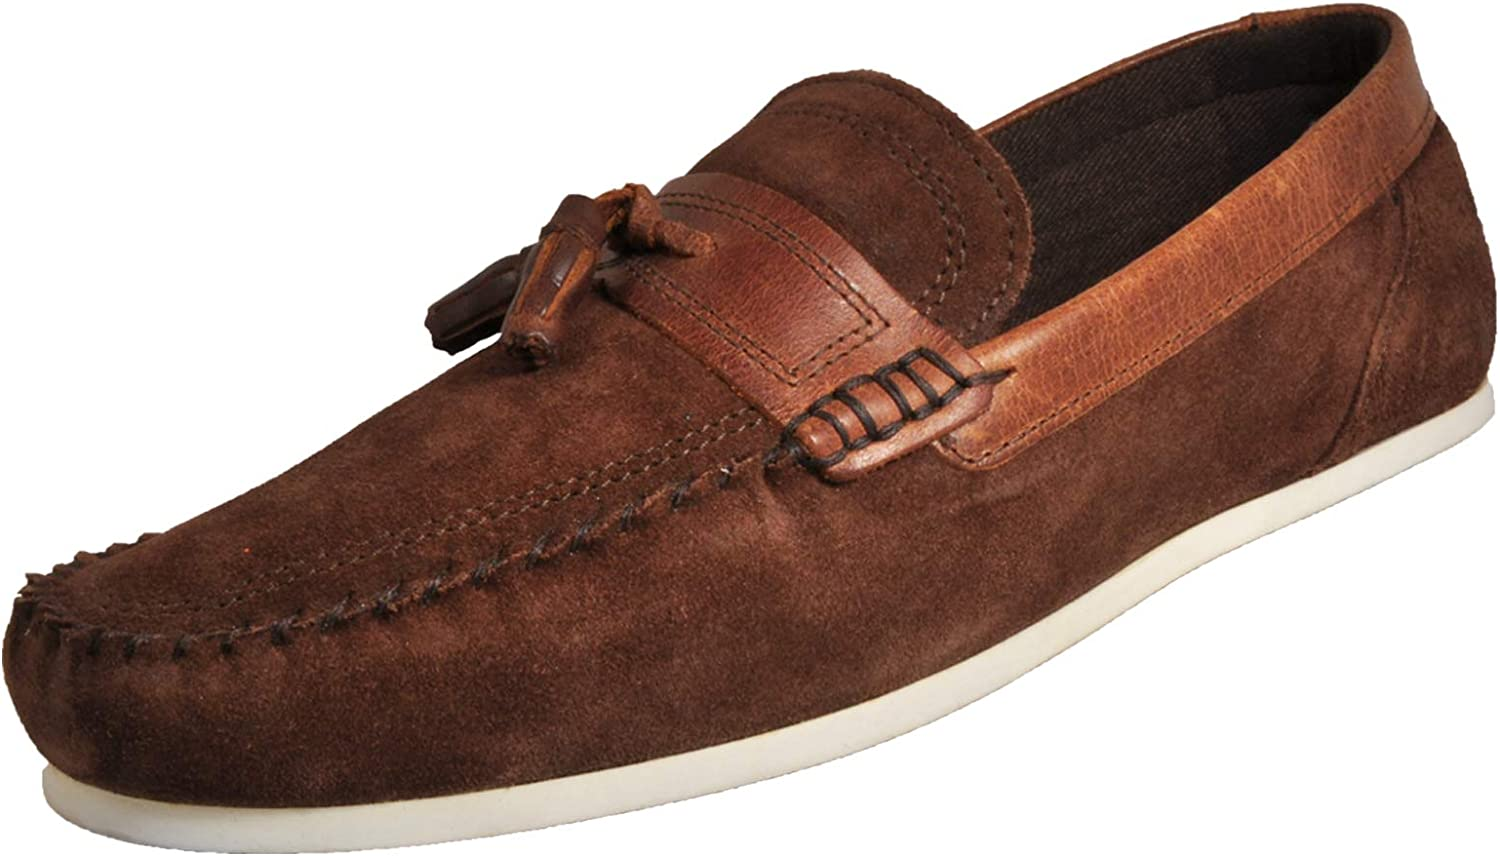 Red Tape Houghton Suede Leather Mens